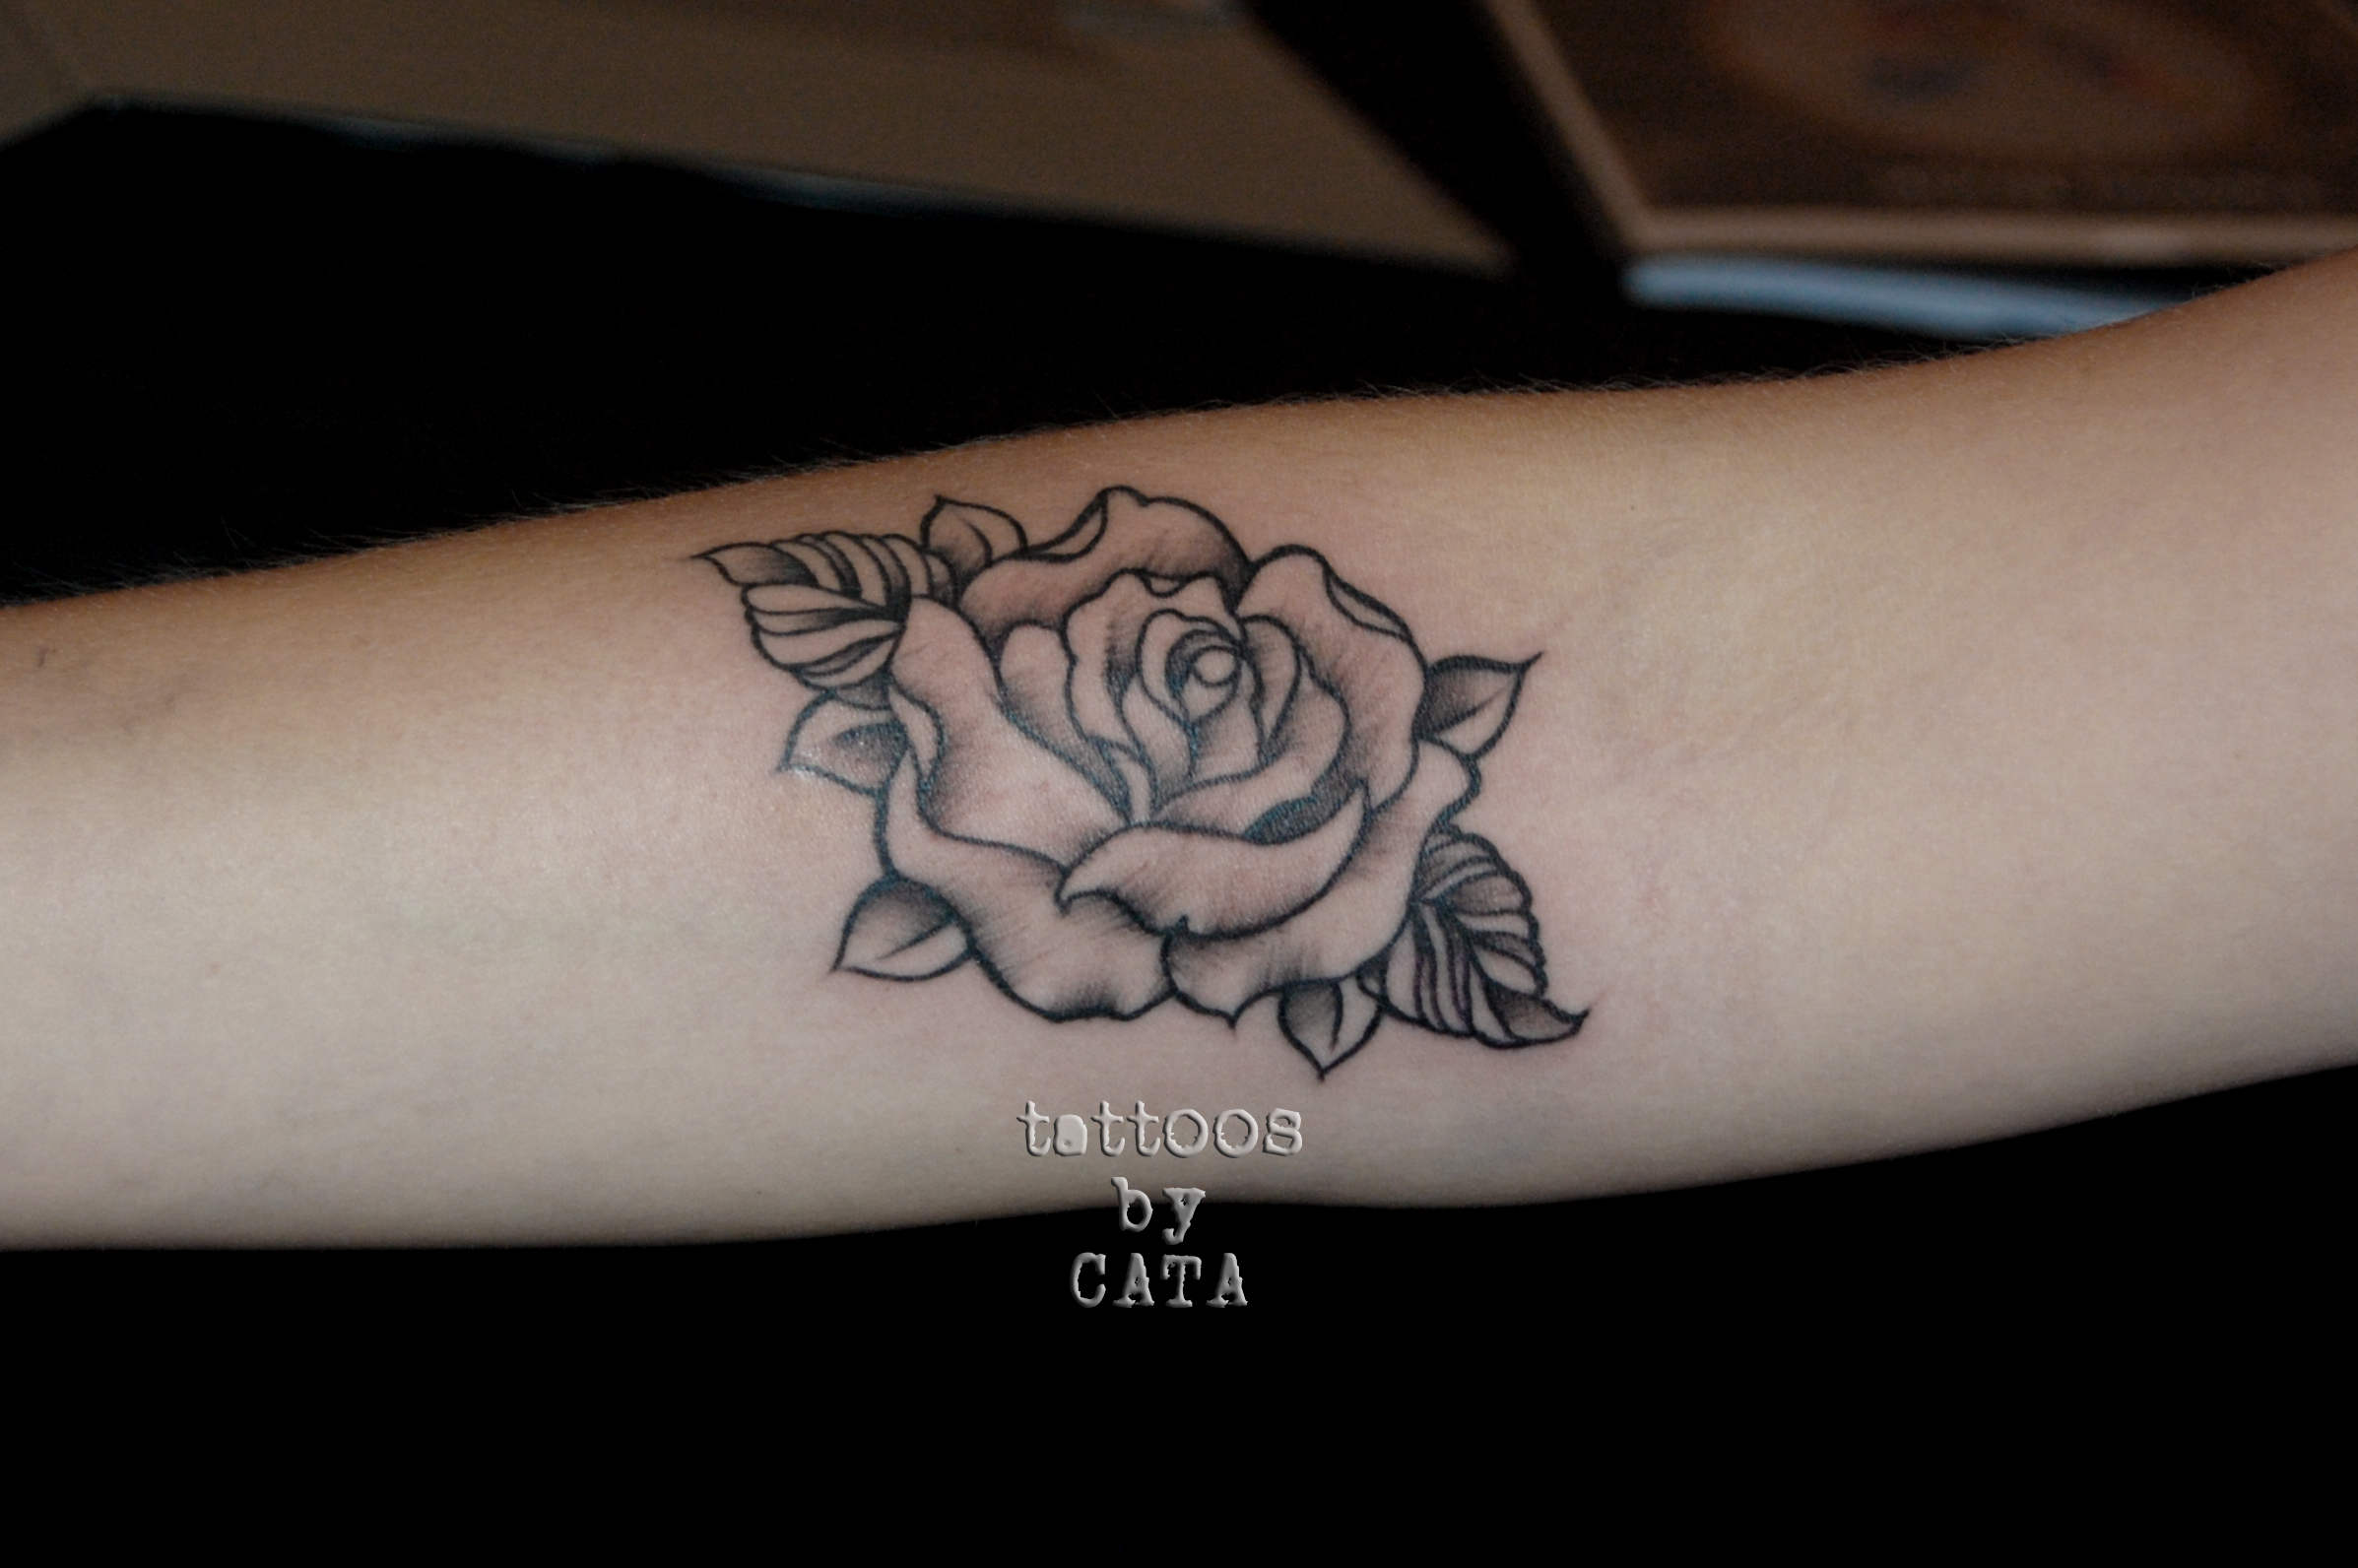 Rose tattoo black and grey by tattoosbycata on deviantart for Black and gray rose tattoos